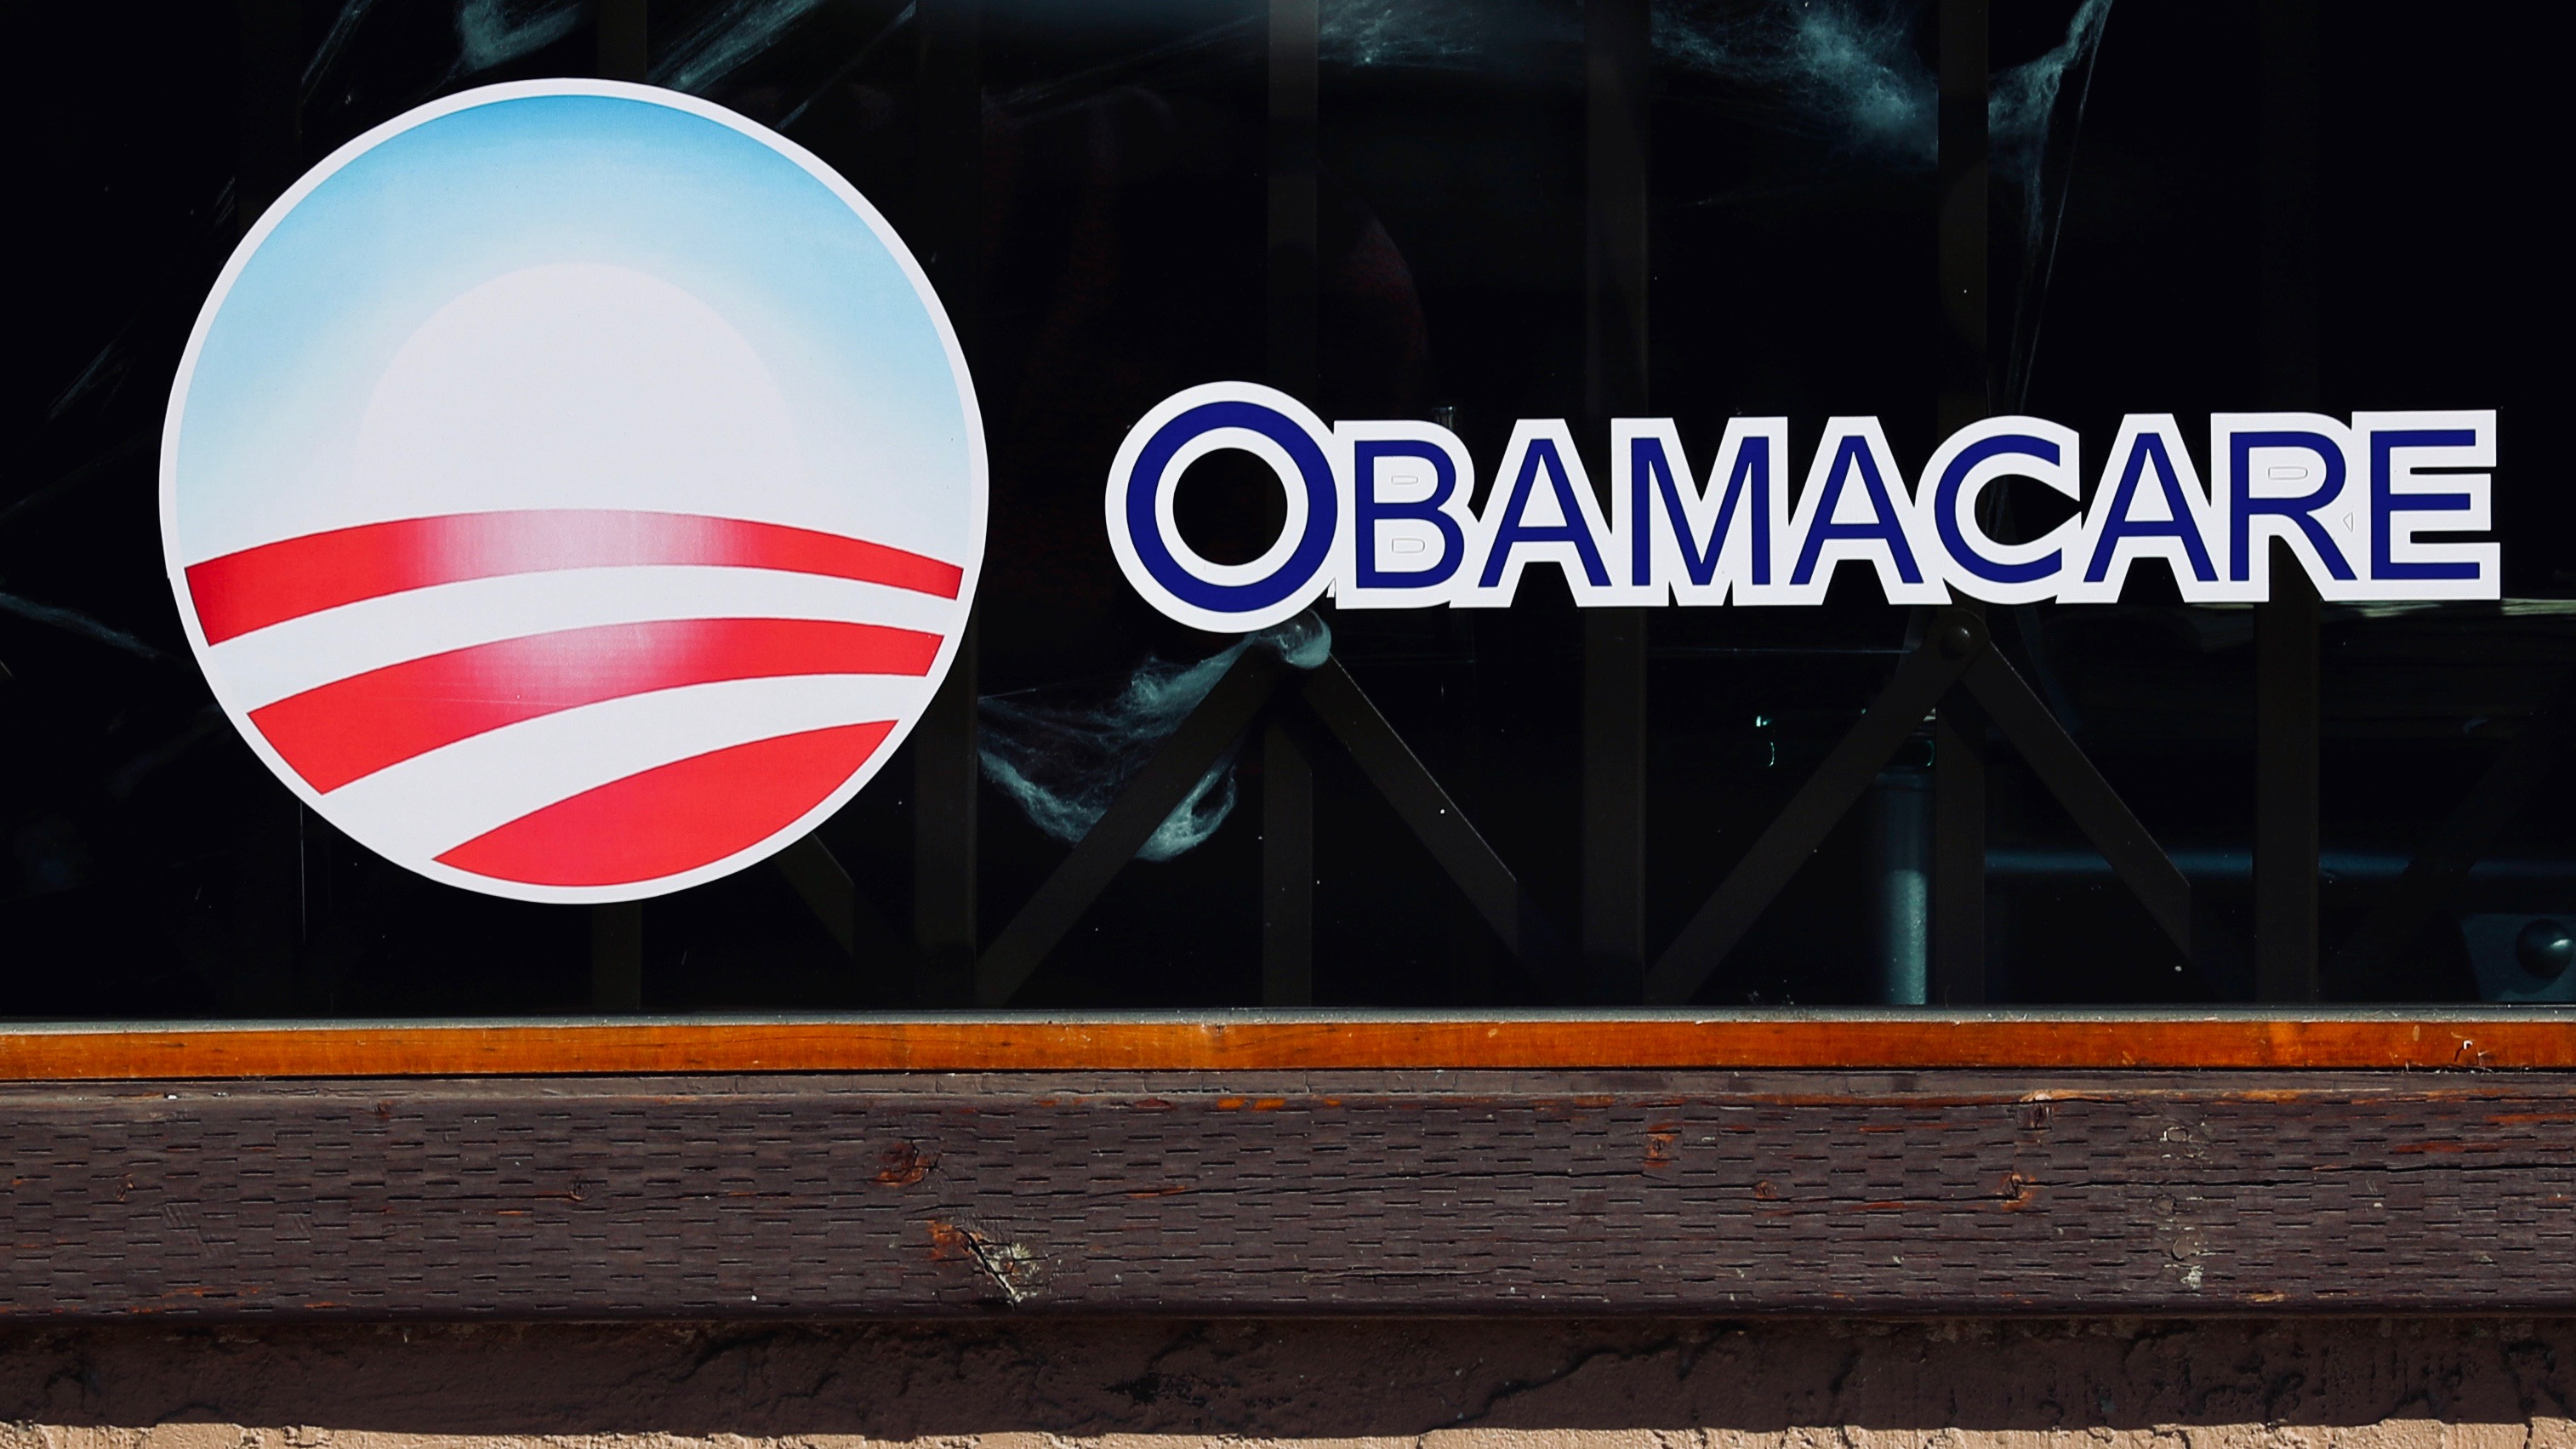 Obamacare sign in store window.